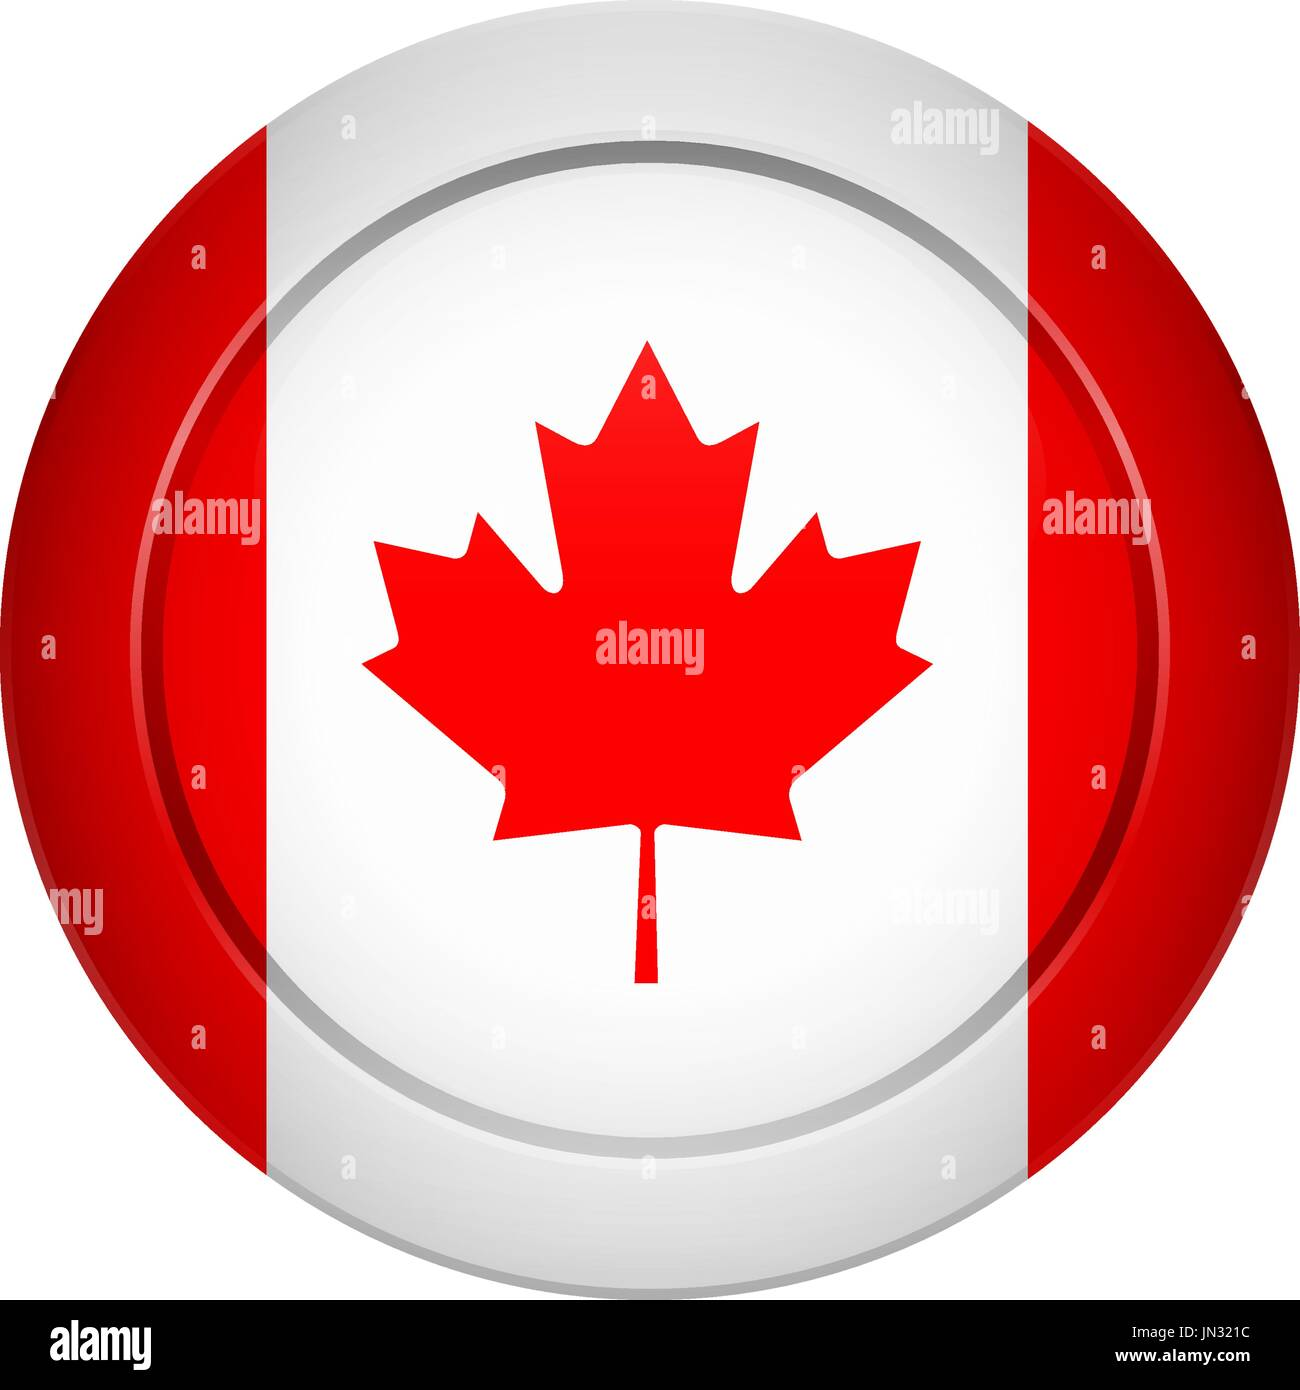 Flag Design Canadian On The Round Button Isolated Template For Your Designs Vector Illustration